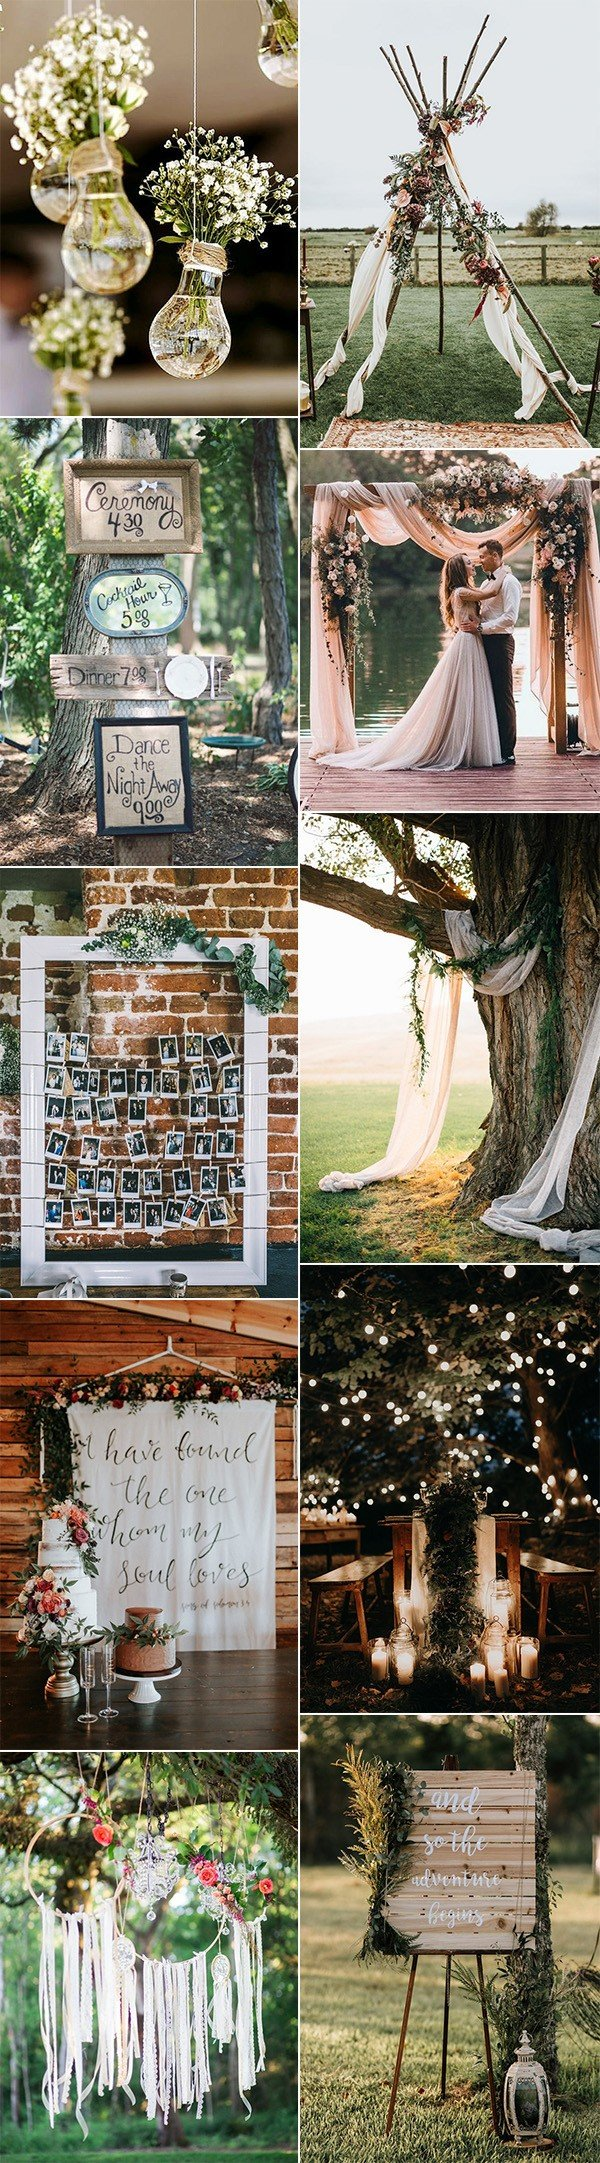 boho chic wedding decoration ideas for 2018